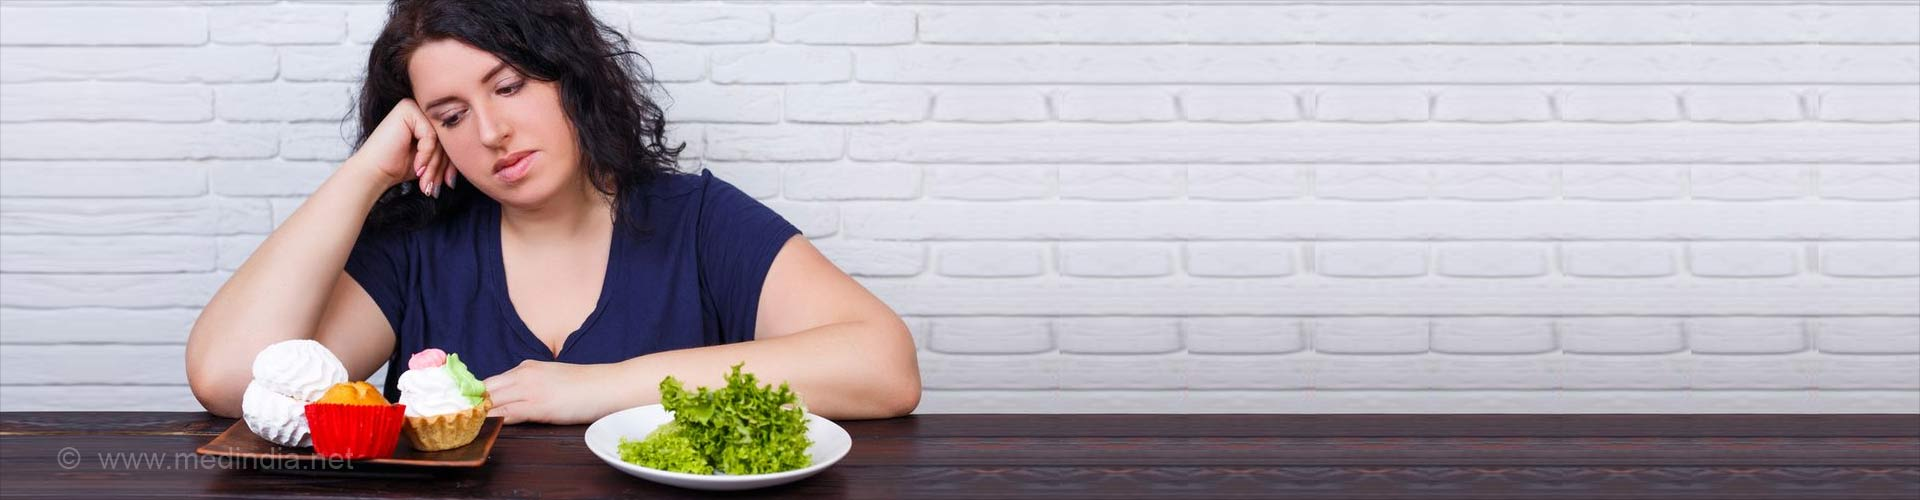 Chronic Dieting - Is it an Eating Disorder?